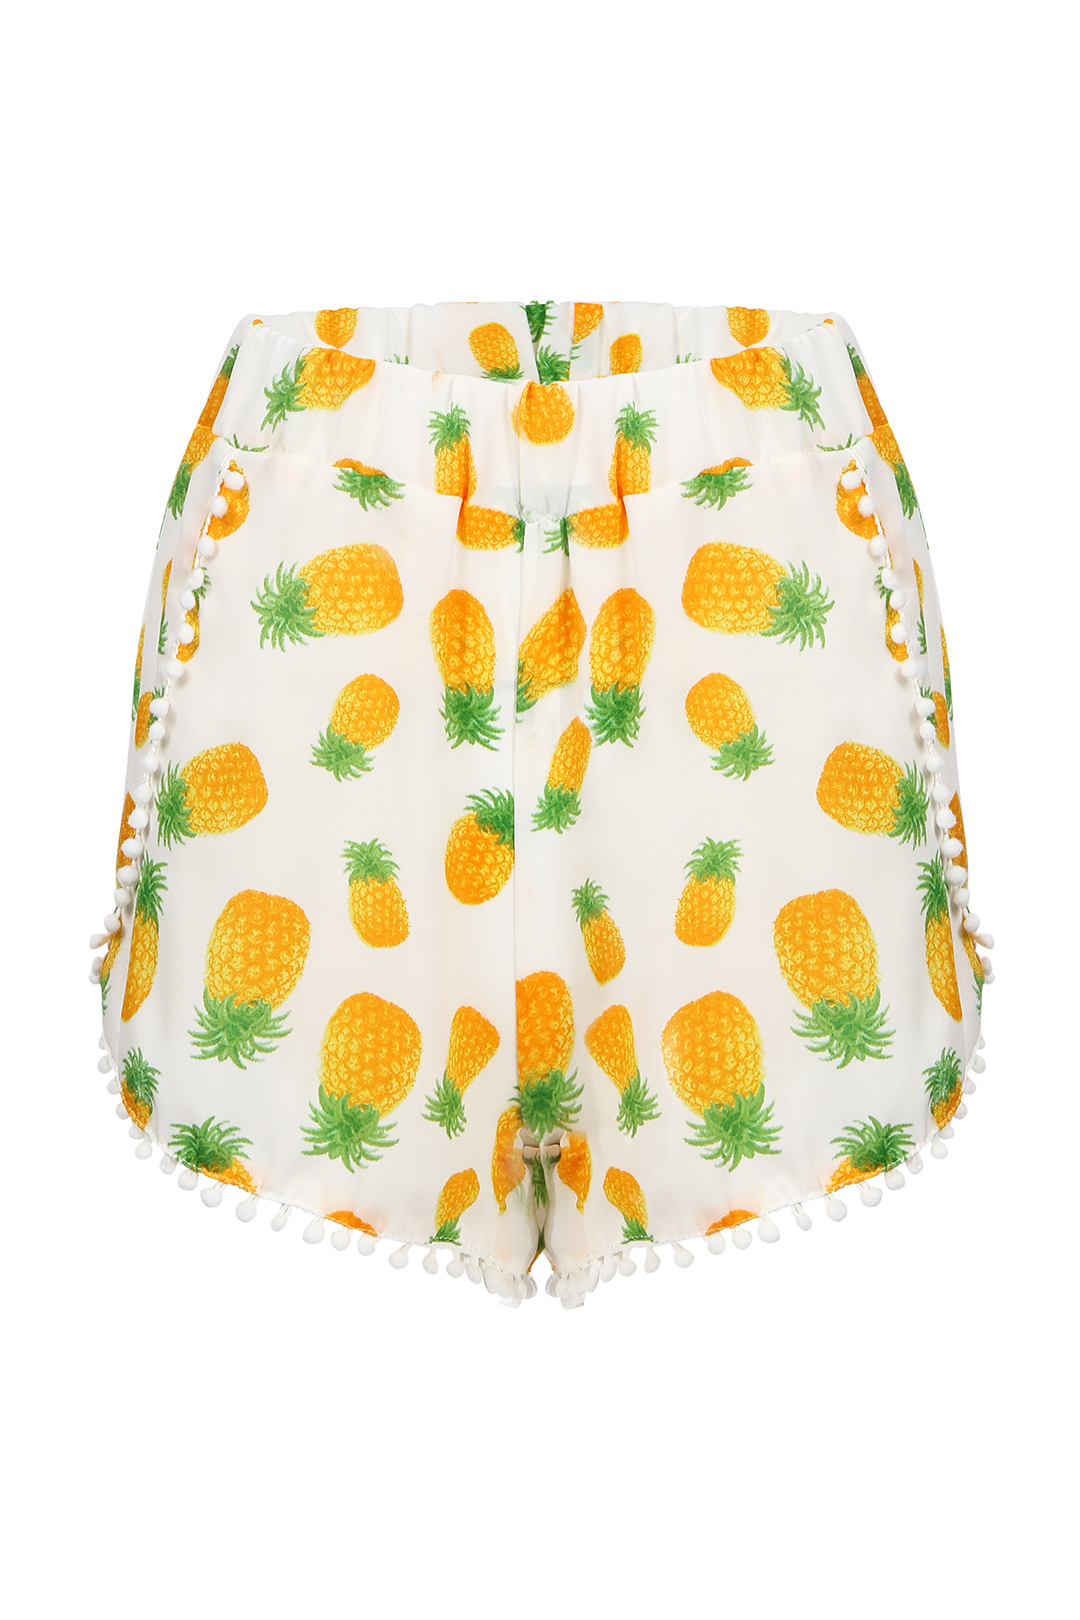 Semi-sheer Printing Pattern Shorts with Pom Pom Trim semi sheer printing pattern shorts with pom pom trim